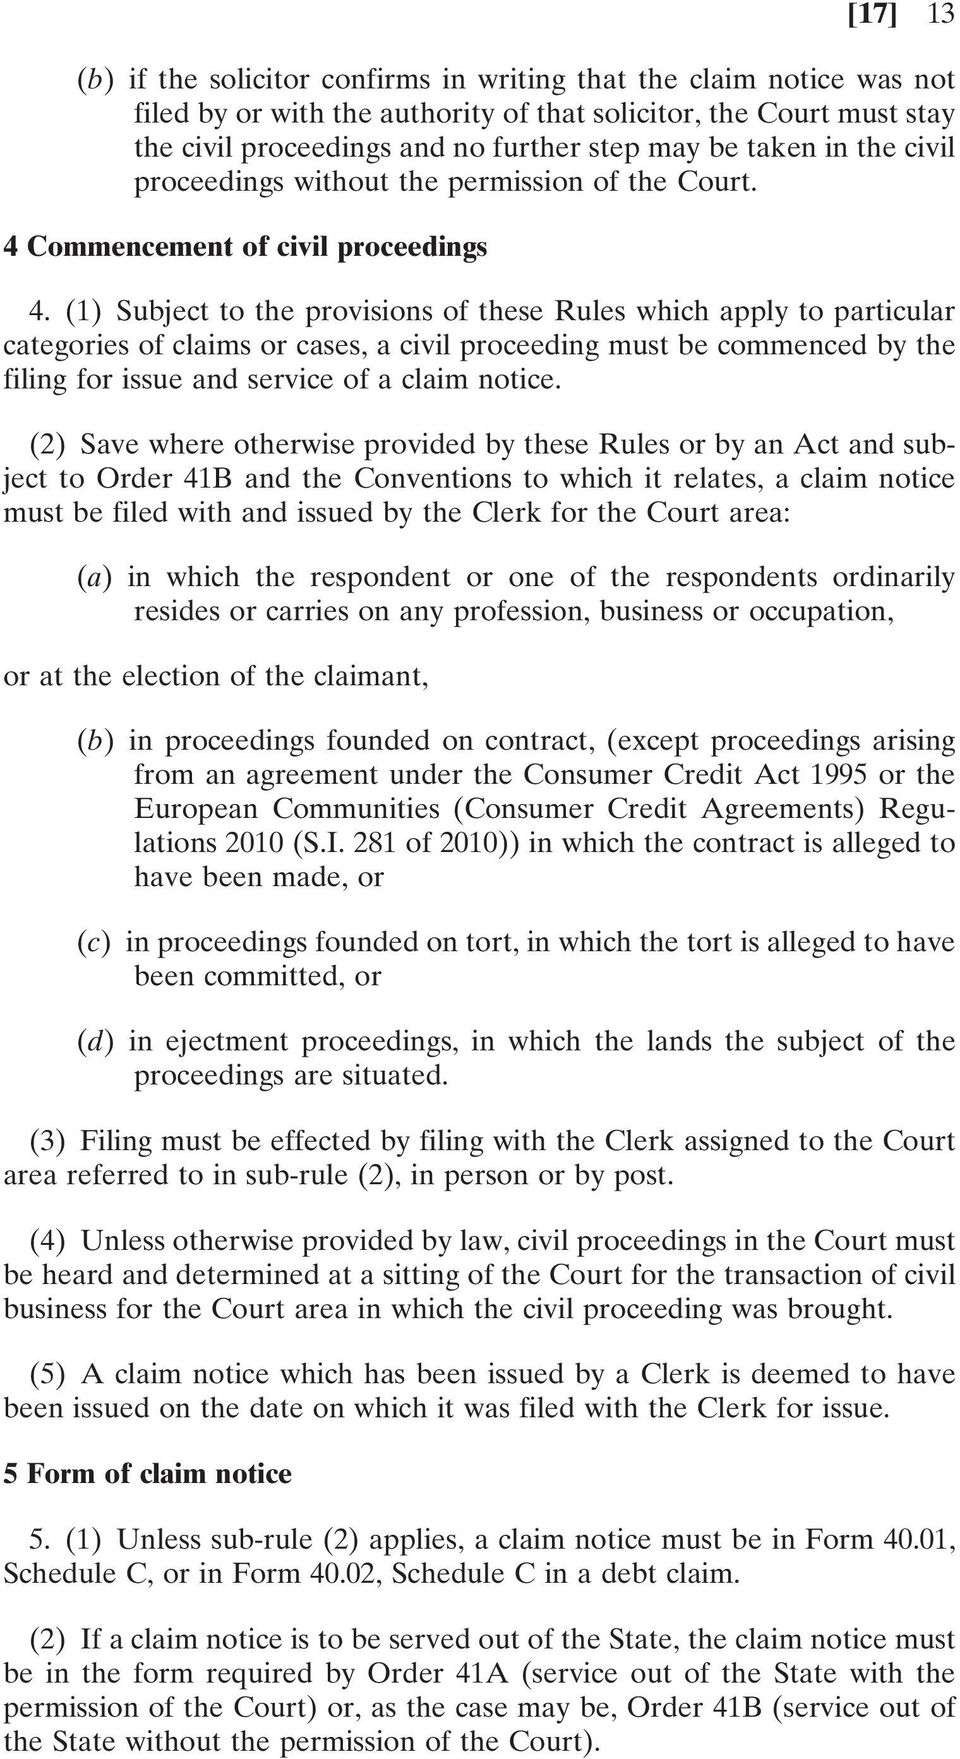 (1) Subject to the provisions of these Rules which apply to particular categories of claims or cases, a civil proceeding must be commenced by the filing for issue and service of a claim notice.